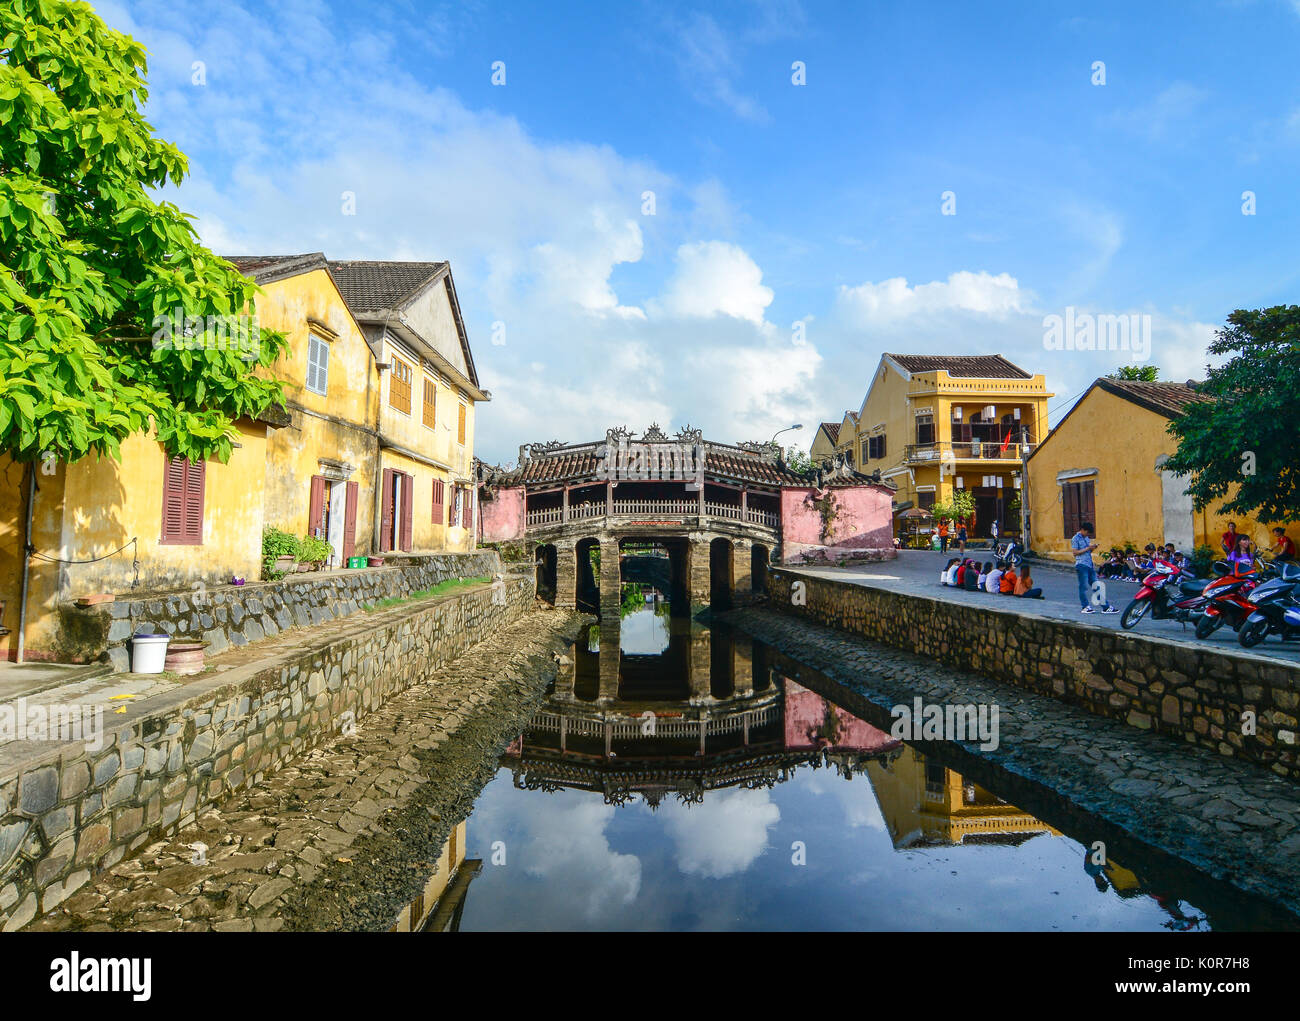 Hoi An, Vietnam - Nov 29, 2015. Japanese Bridge Pagoda (Chua Cau) in Hoi An, Vietnam. Ancient and peaceful, Hoi An is one of the most popular destinat - Stock Image